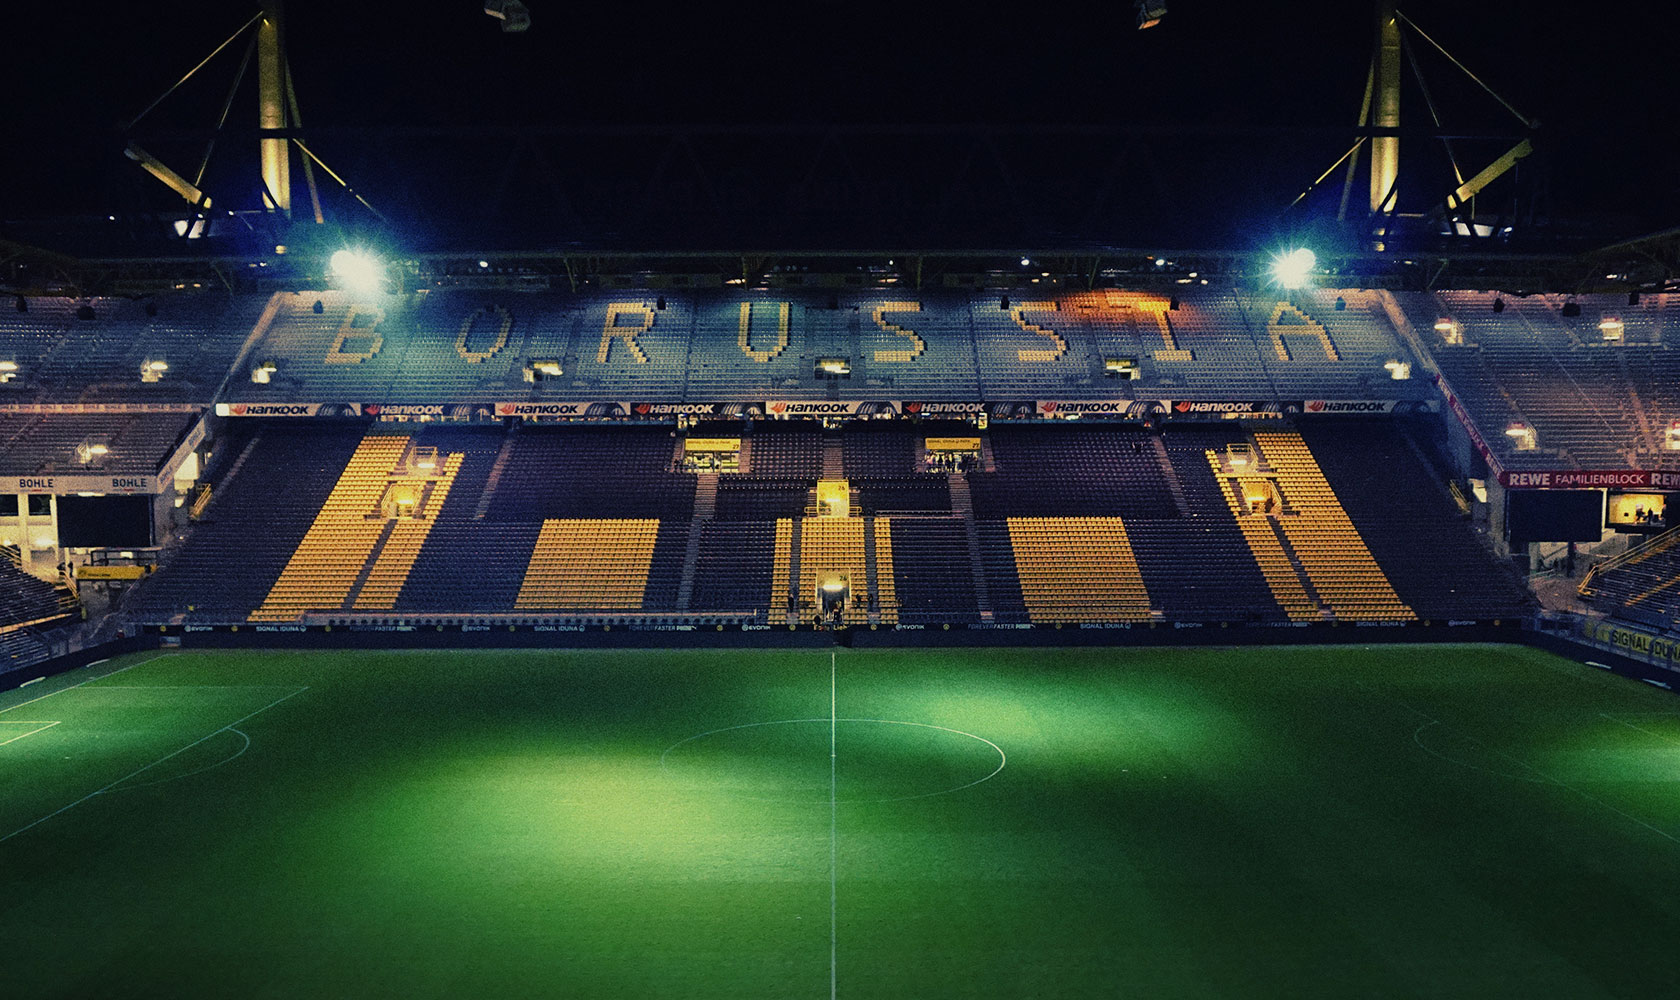 A night time view of the empty Borussia Dortmund stadium. Photo: Marvin Ronsdorf.